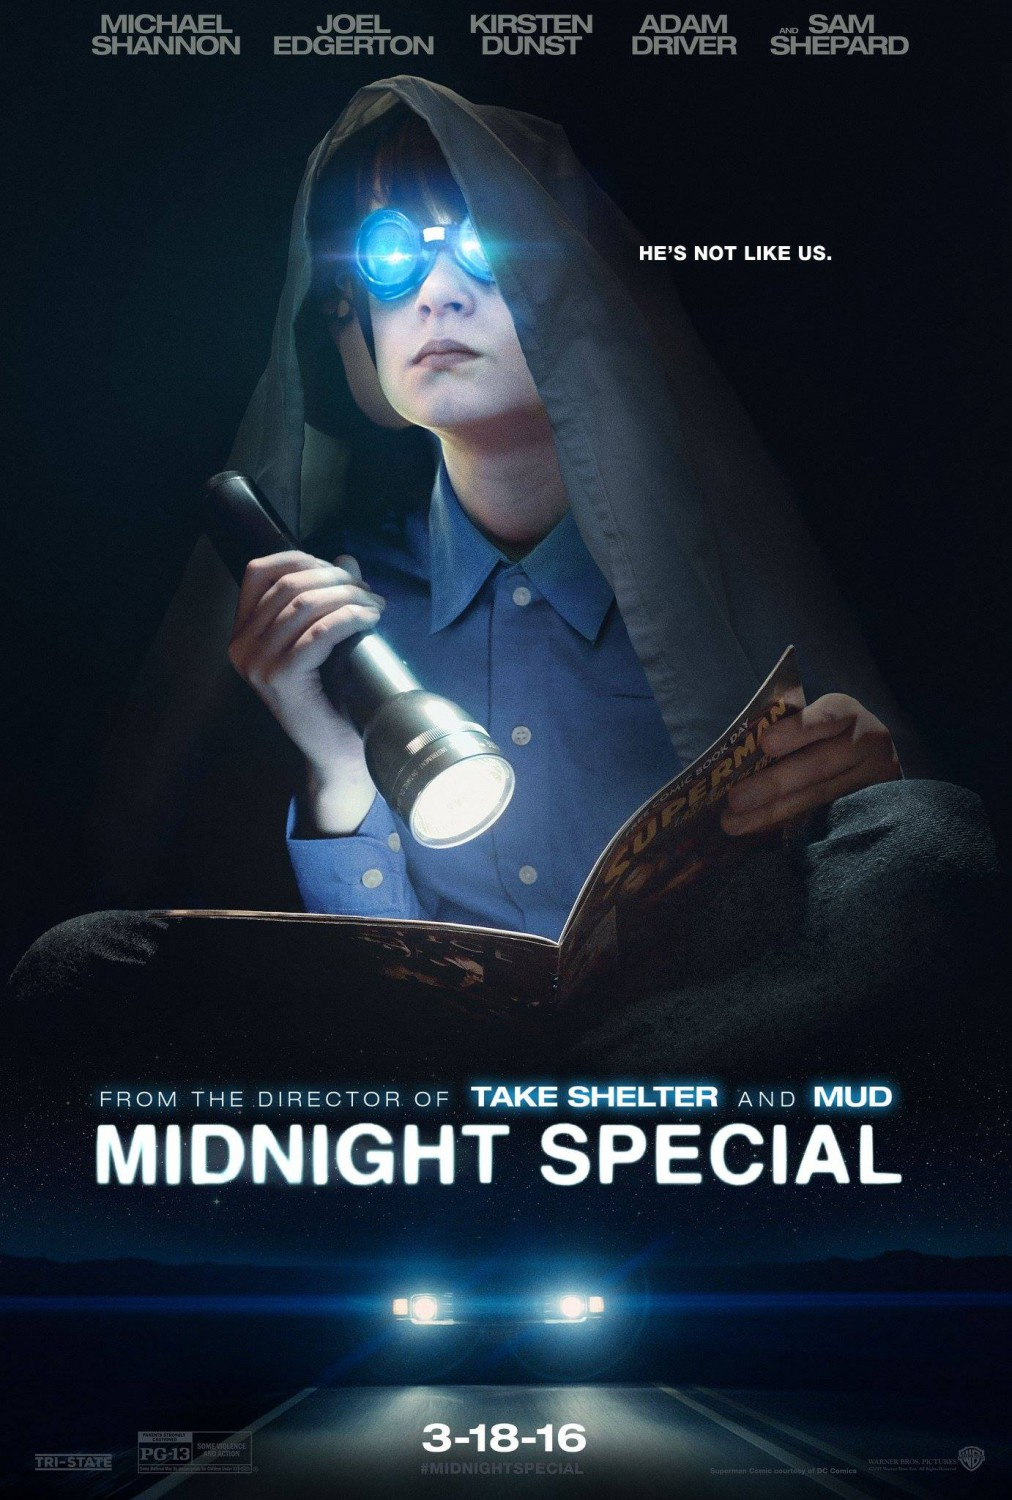 Midnight Special   (2016) dir. Jeff Nichols Rated: PG-13 image:©2016  Warner Bros. Pictures